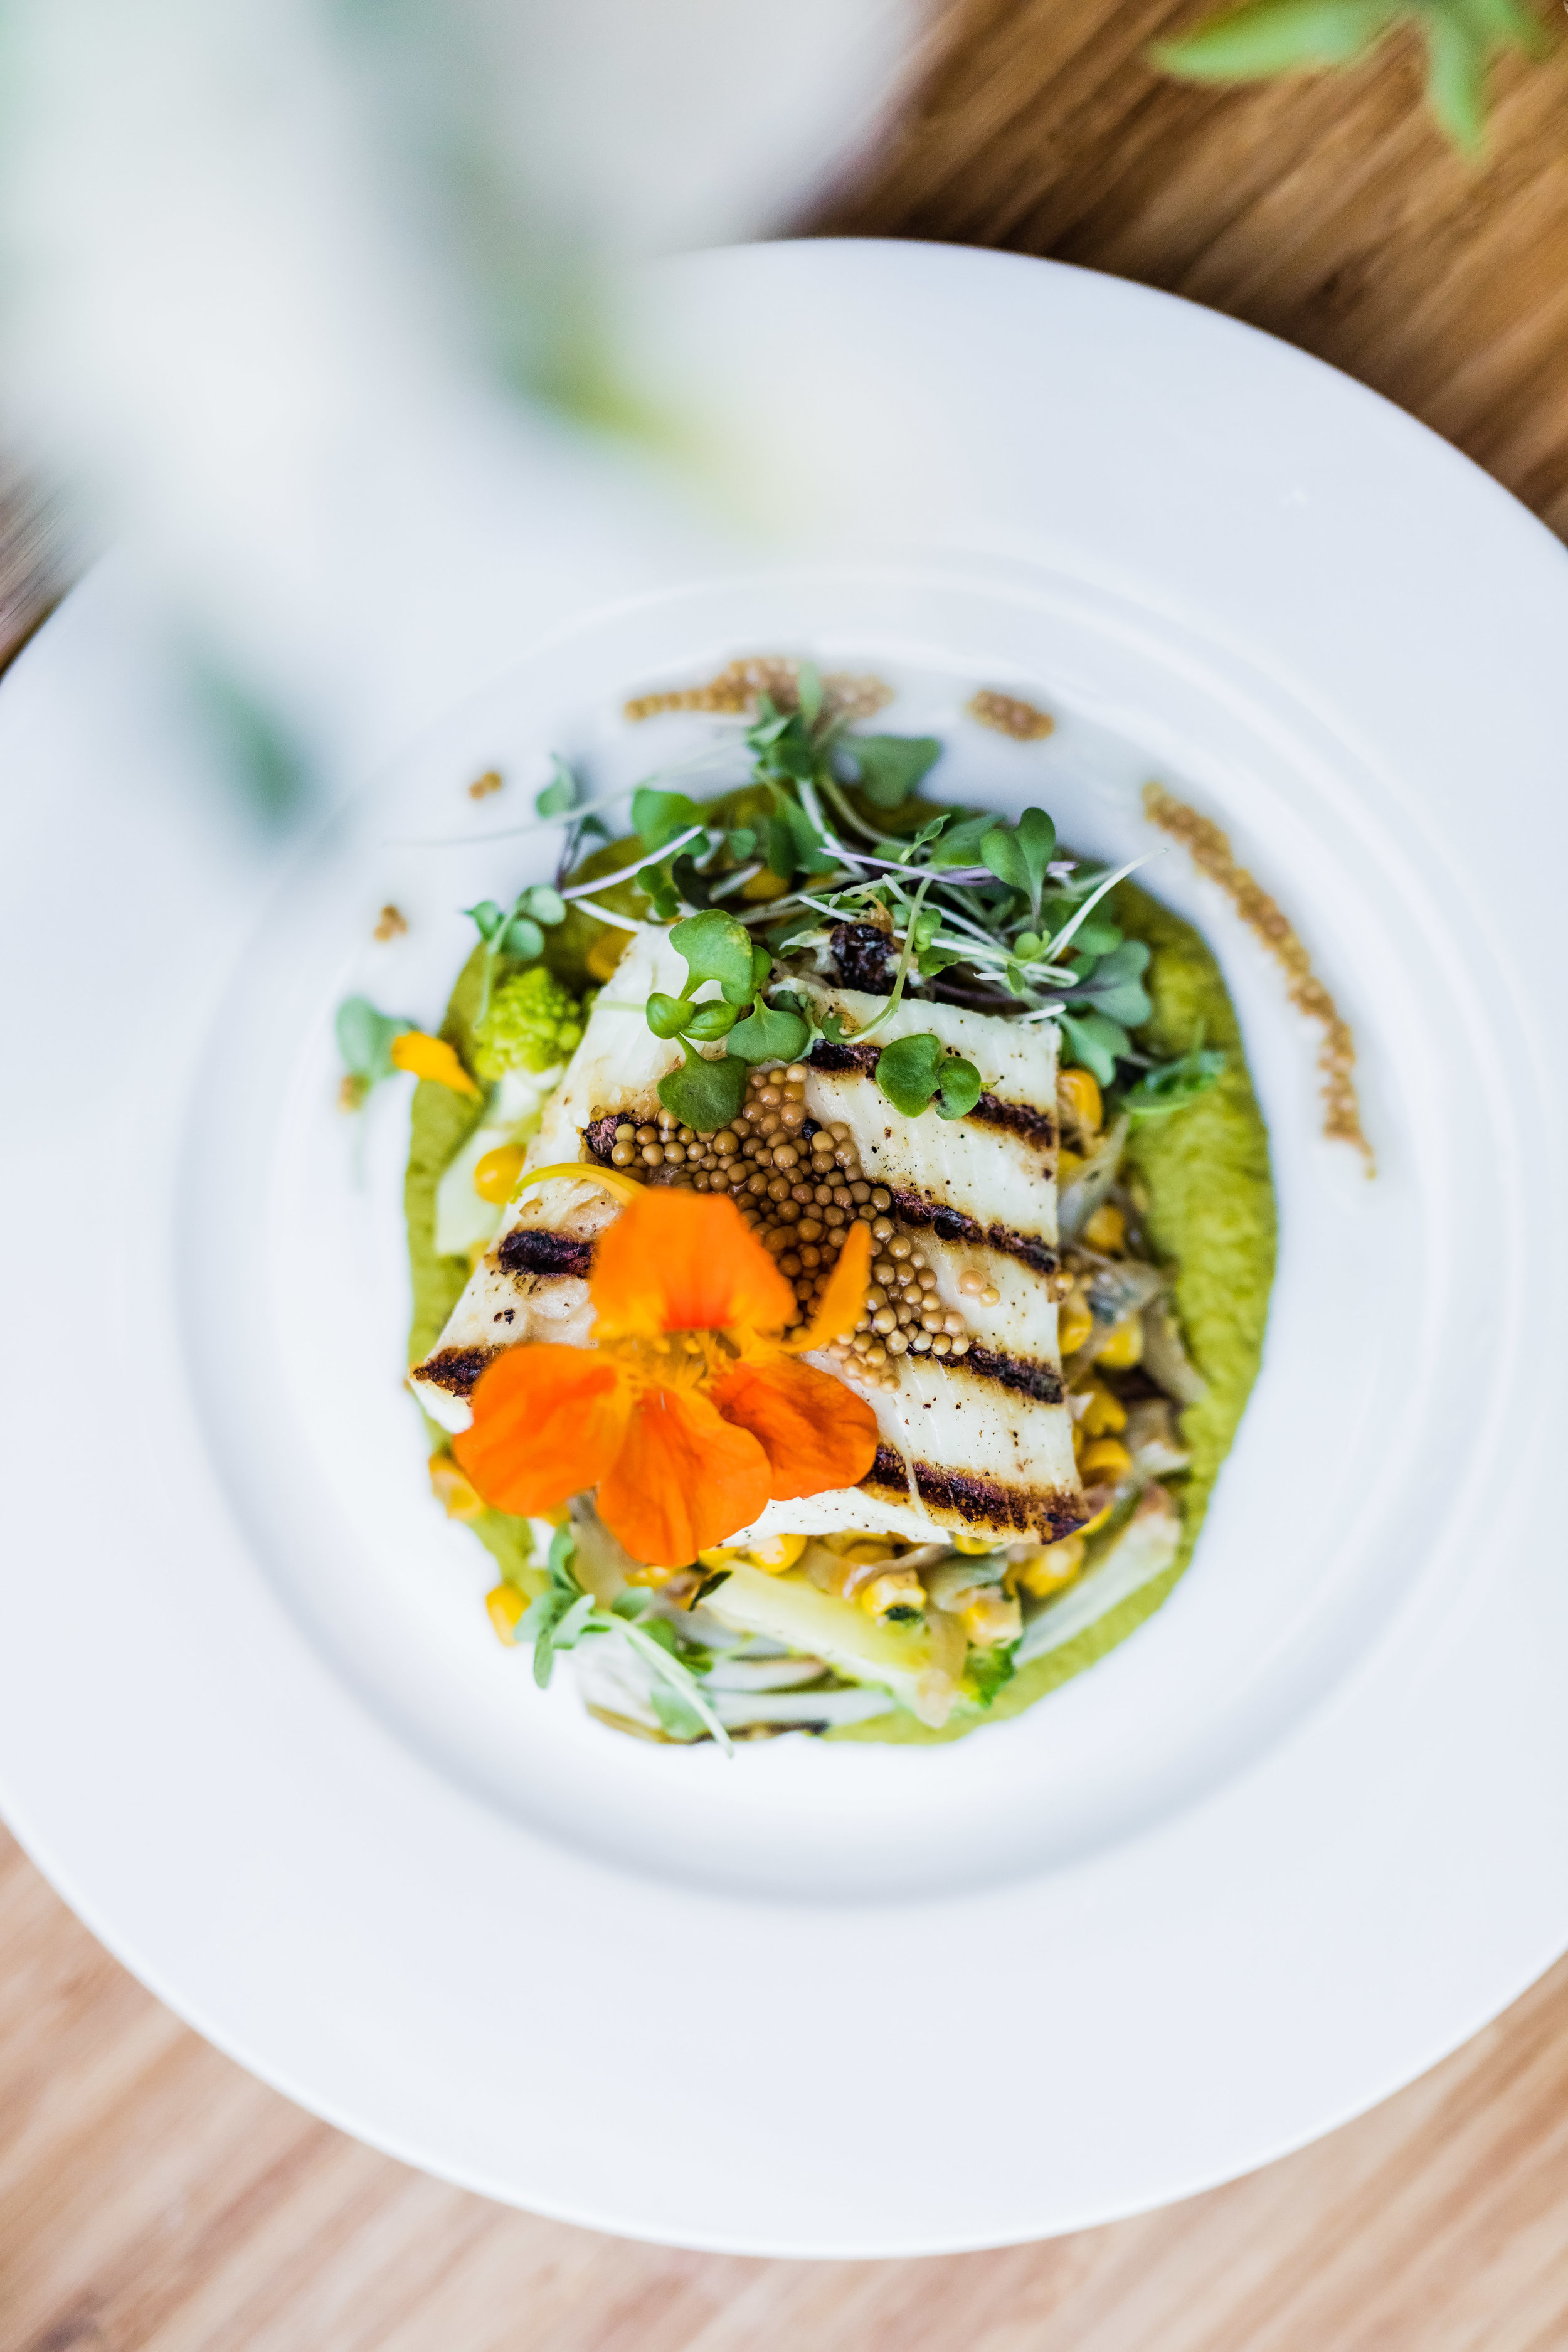 Halibut with pickled mustard seeds and edible flowers